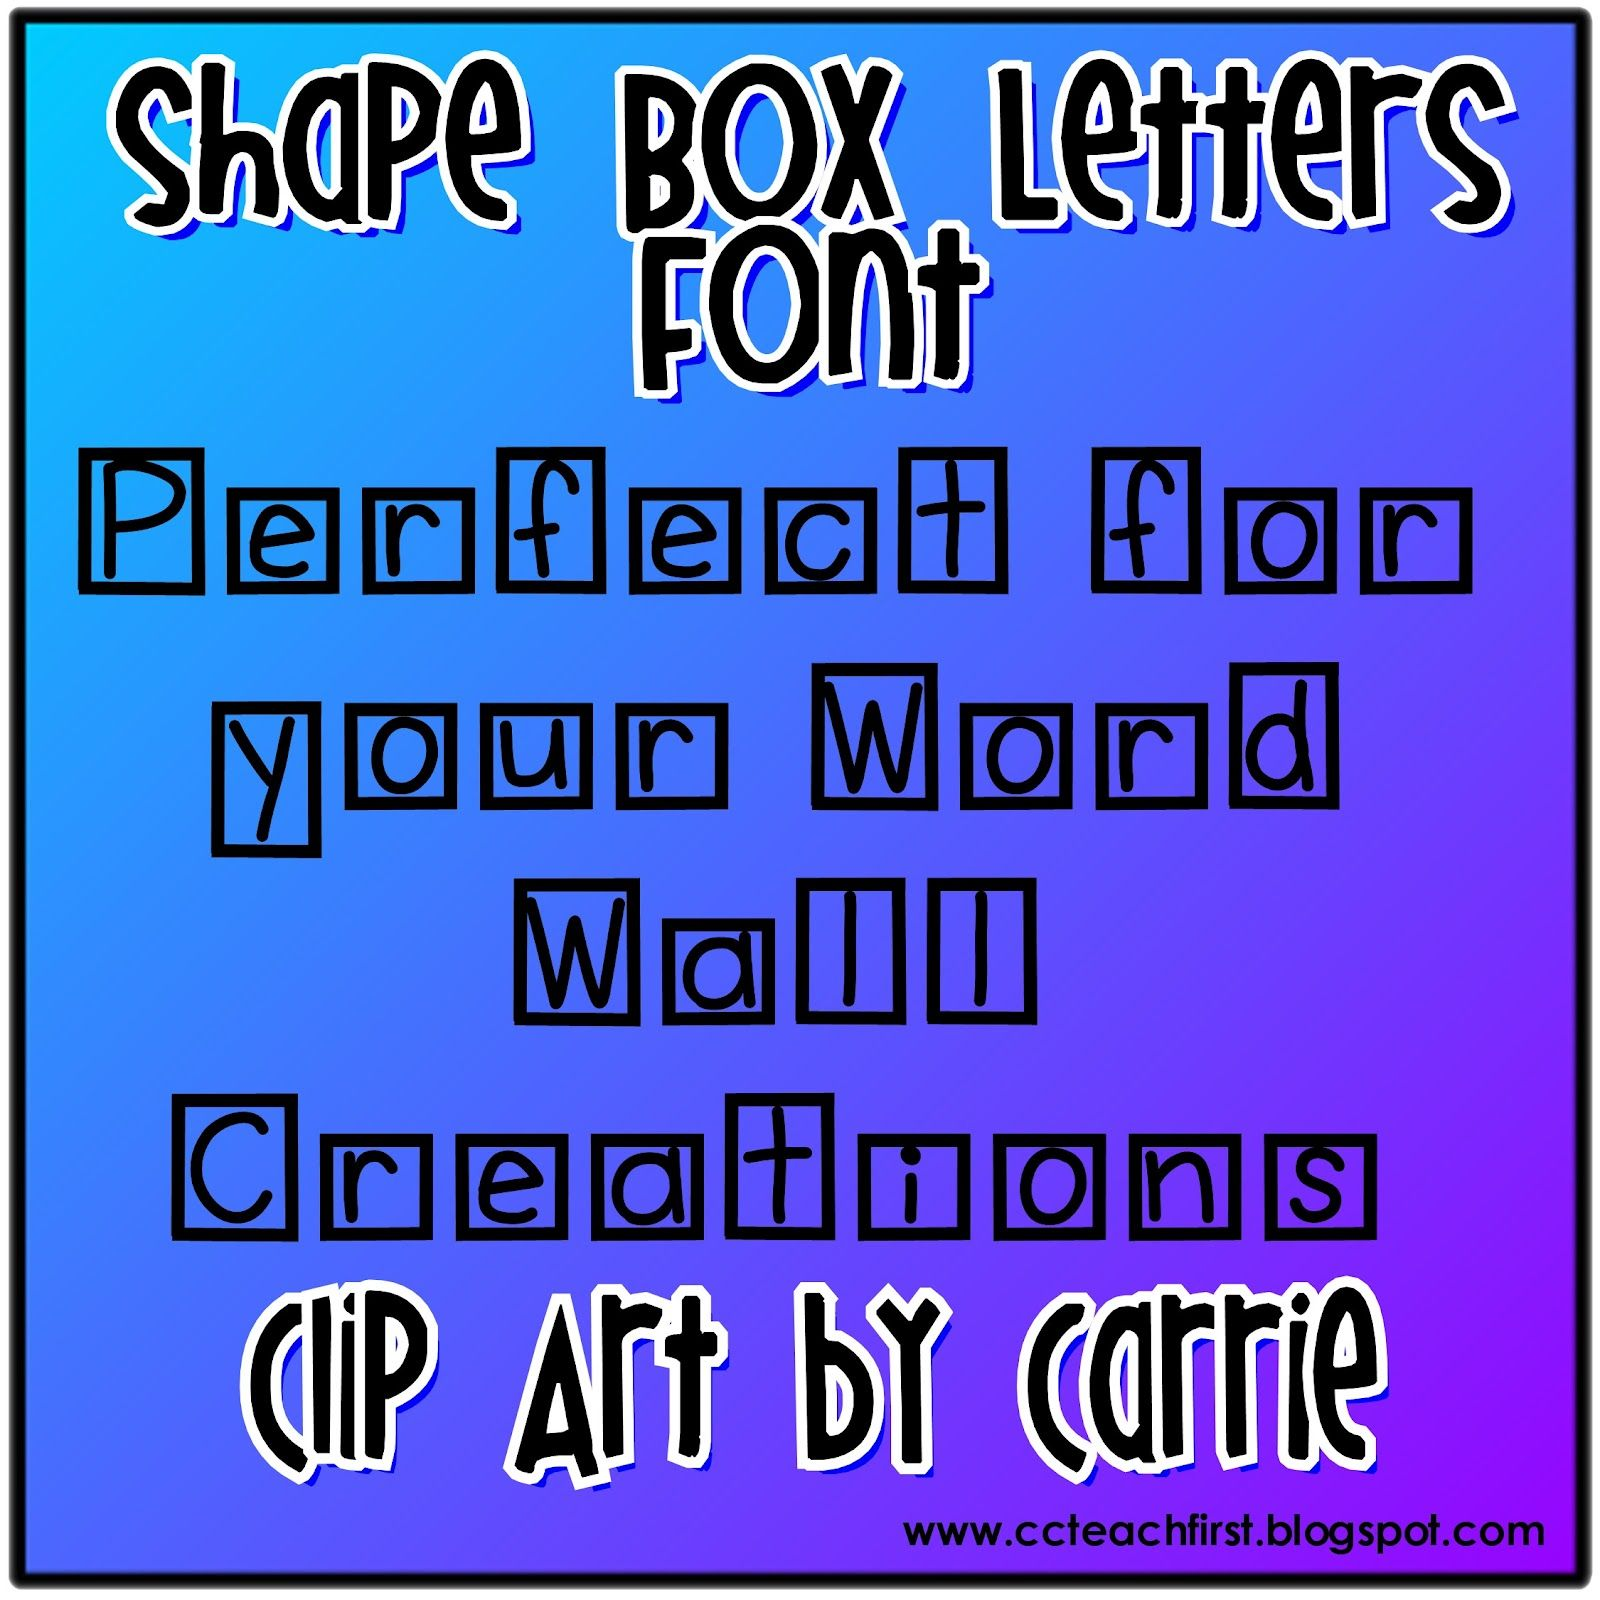 Shape Box Letter Font By Clip Art By Carrie  Tpt Clipart